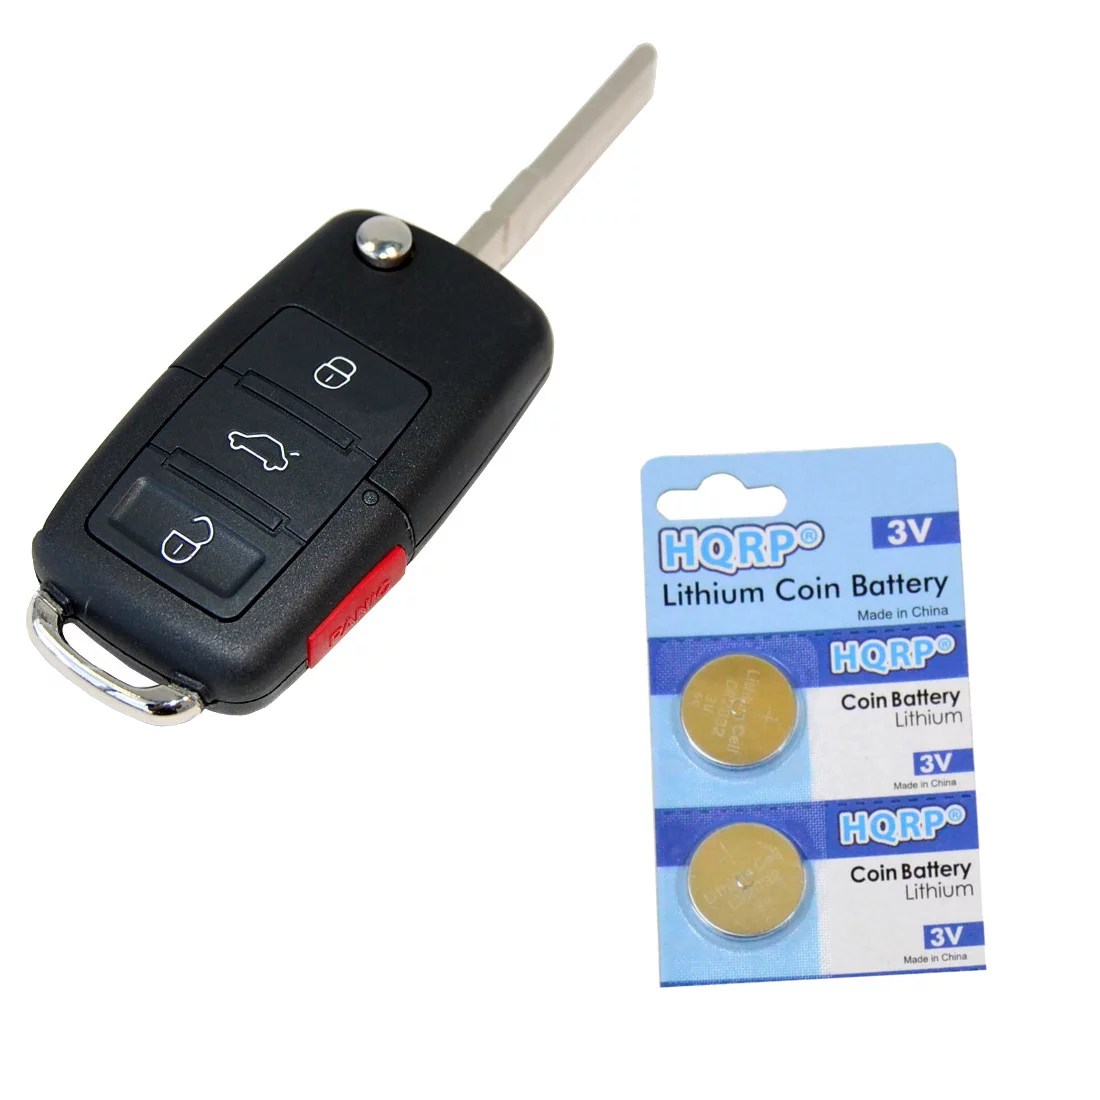 hight resolution of hqrp transmitter and two batteries for volkswagen vw beetle 2000 2001 2002 2003 2004 2005 2006 2007 2008 2009 00 01 02 03 04 05 06 07 08 09 key fob remote